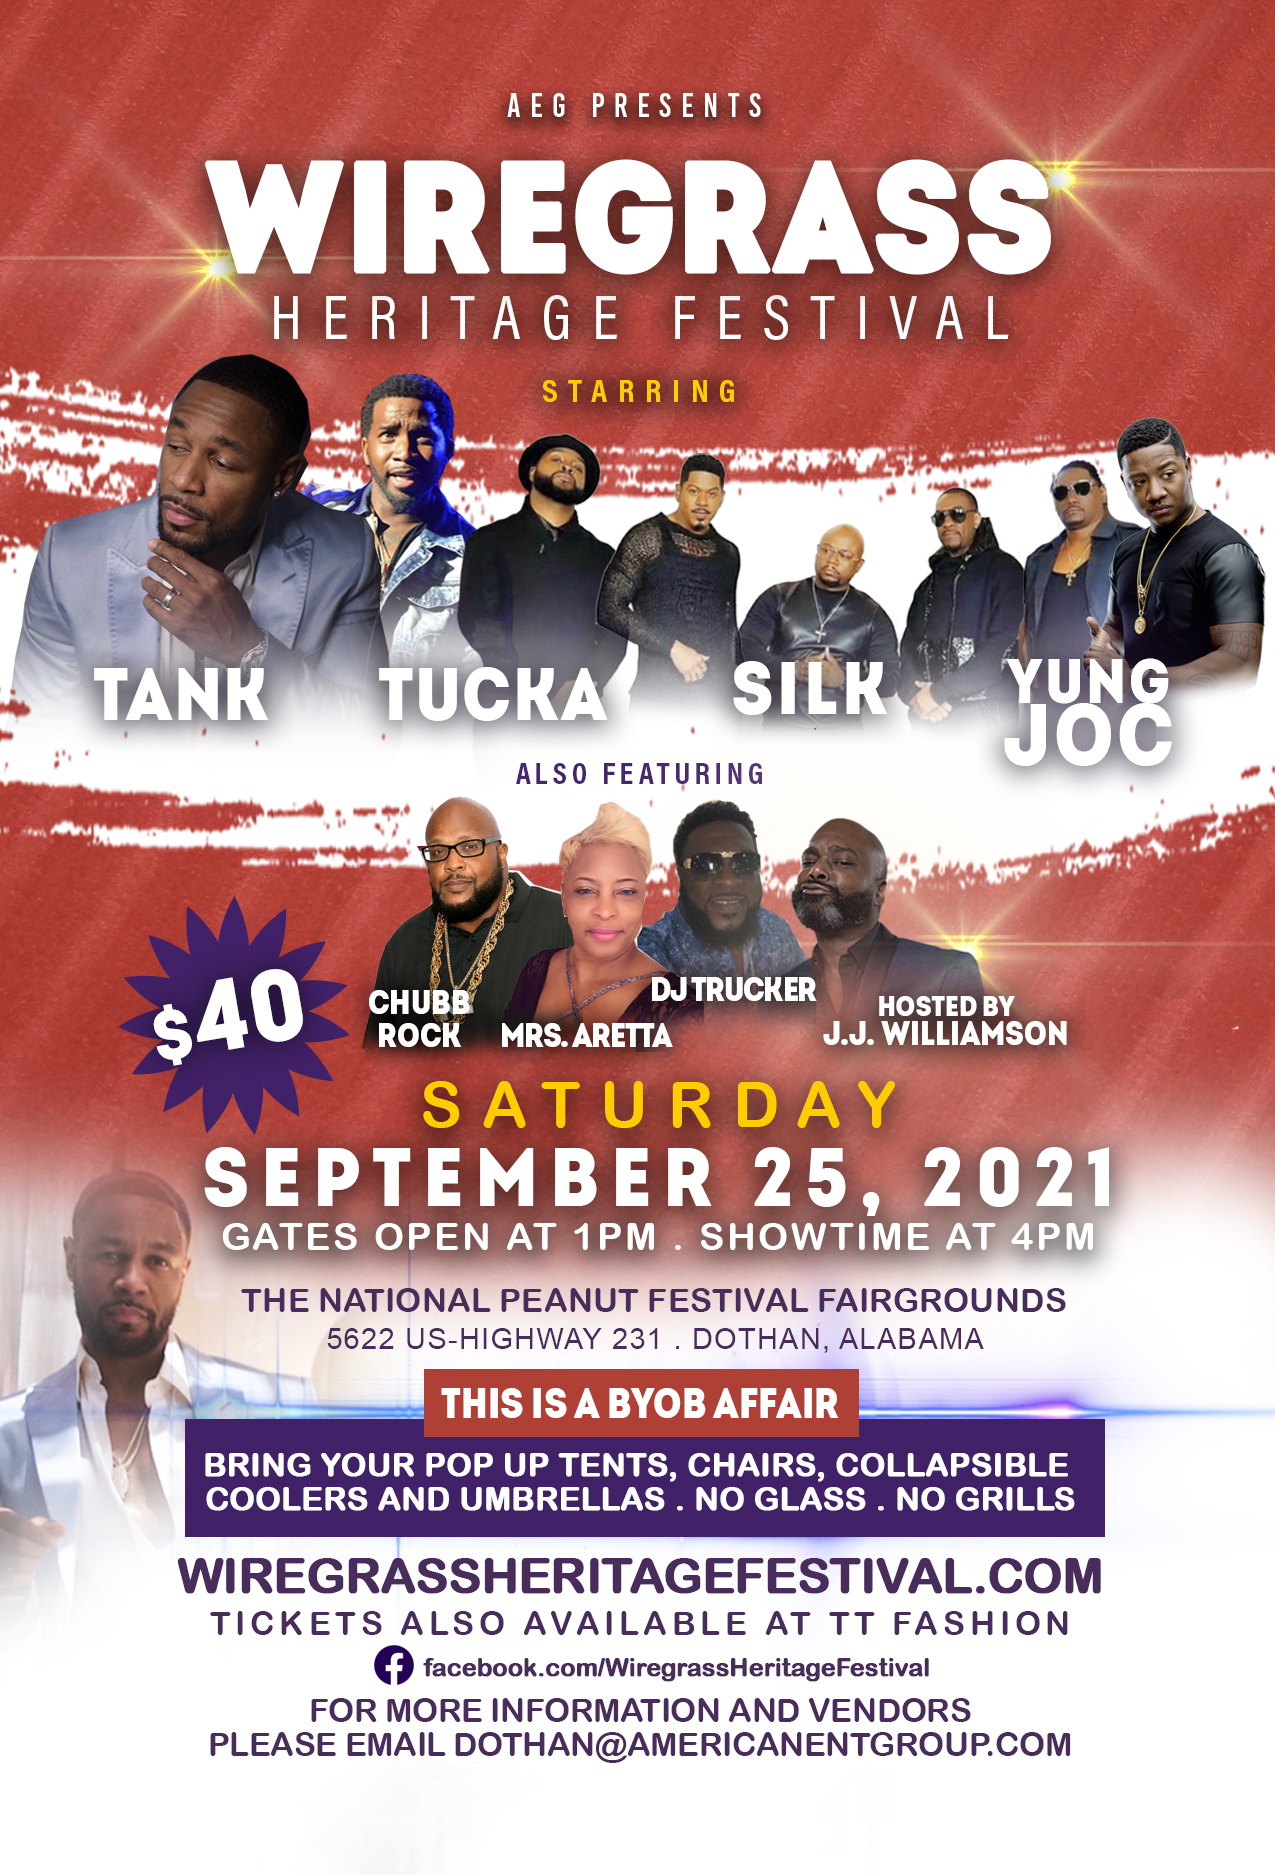 Chance to WIN tickets to the Wiregrass Heritage Festival 2021!